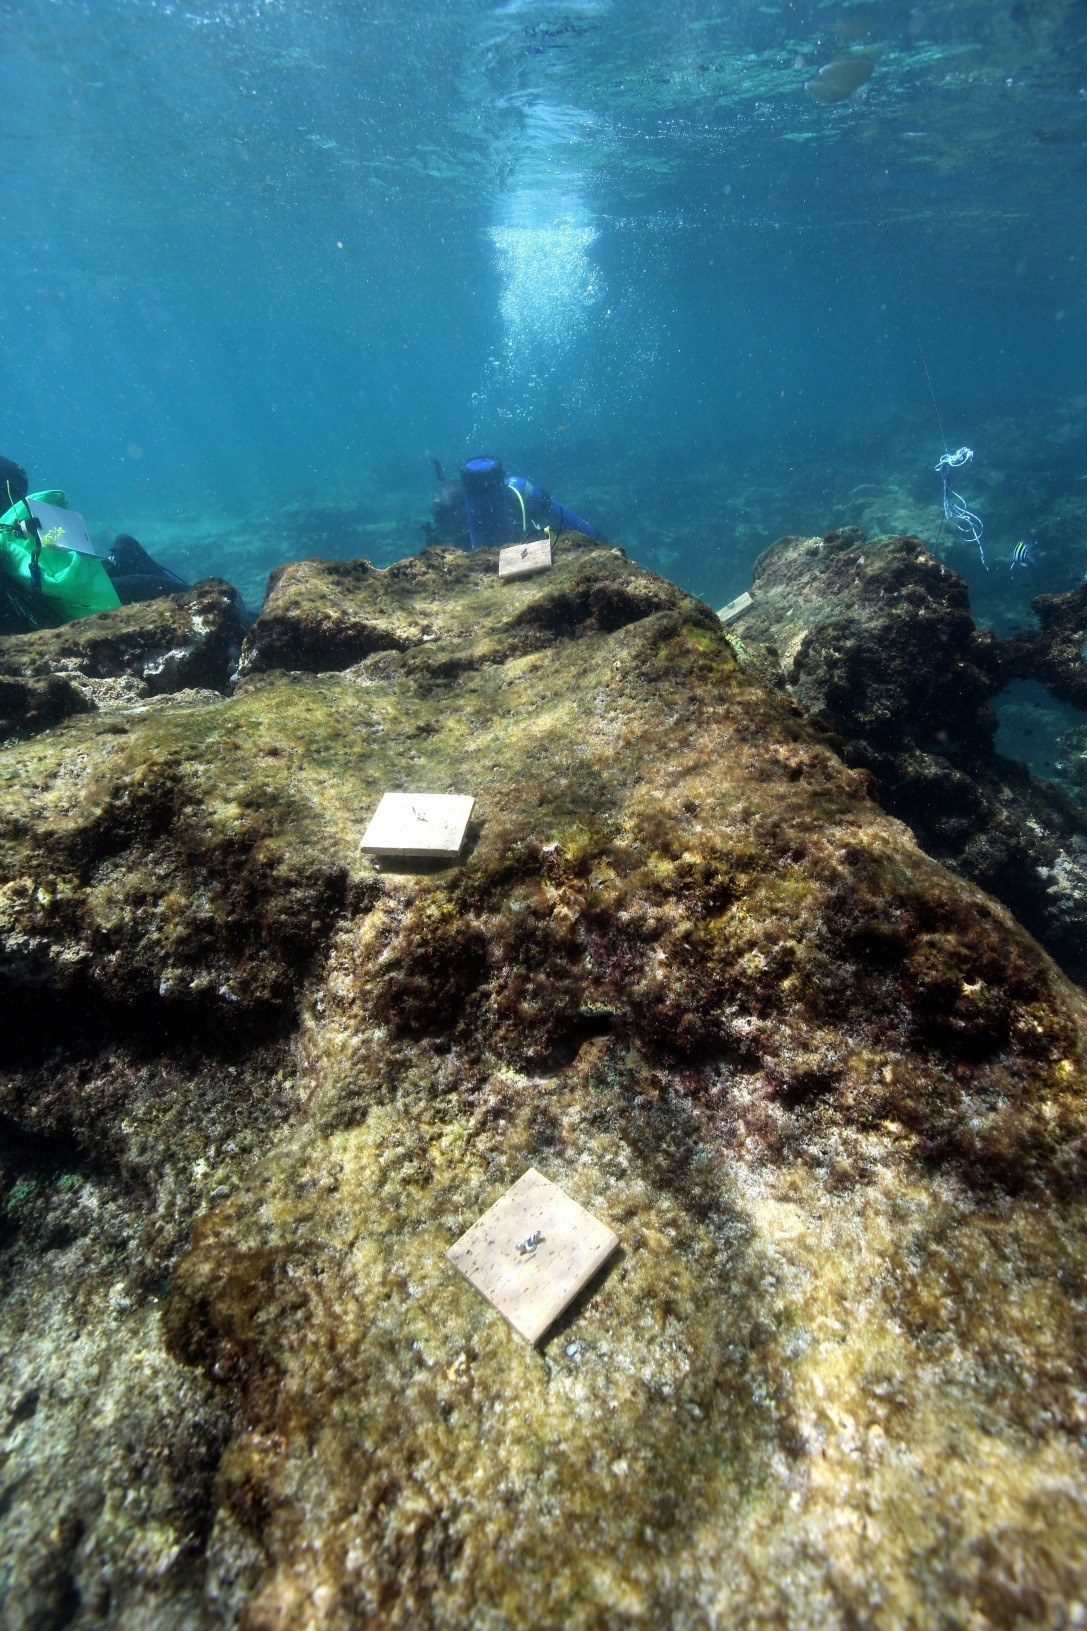 Underwater image of terracotta tiles that have been deployed onto disturbed reefs